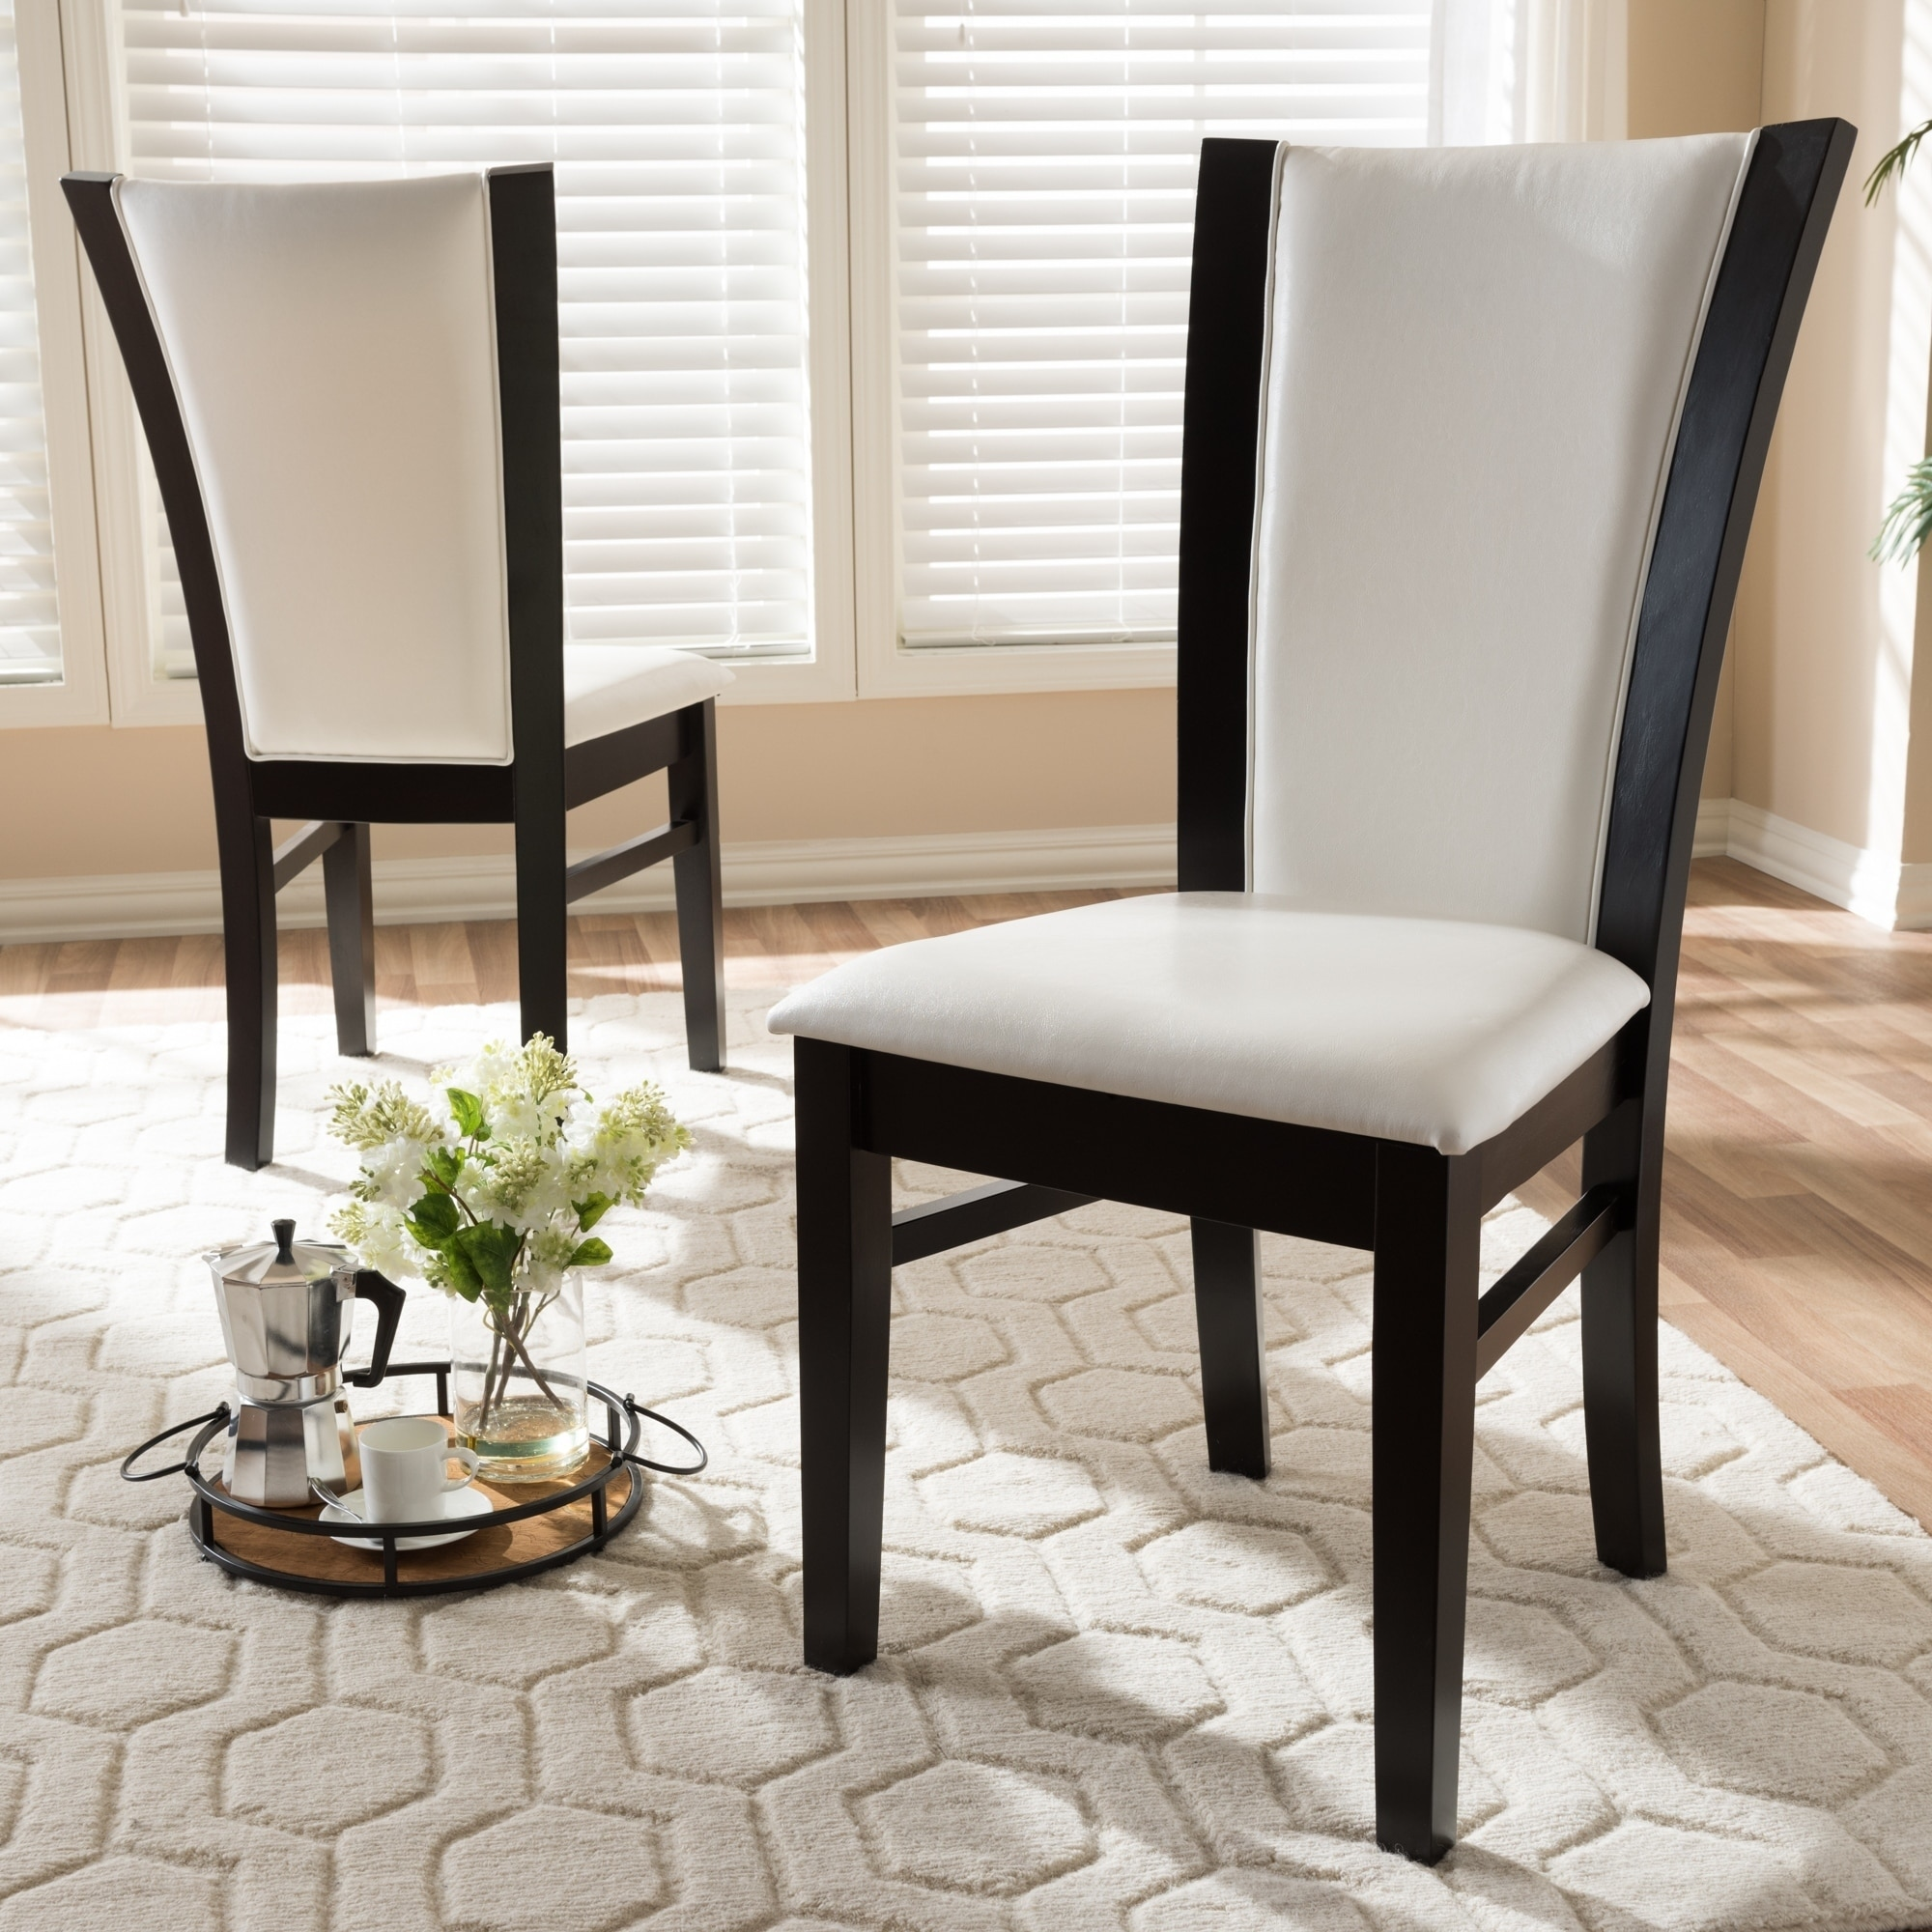 Image of: Shop Black Friday Deals On Contemporary White Faux Leather Dining Chair Set By Baxton Studio Overstock 19502786